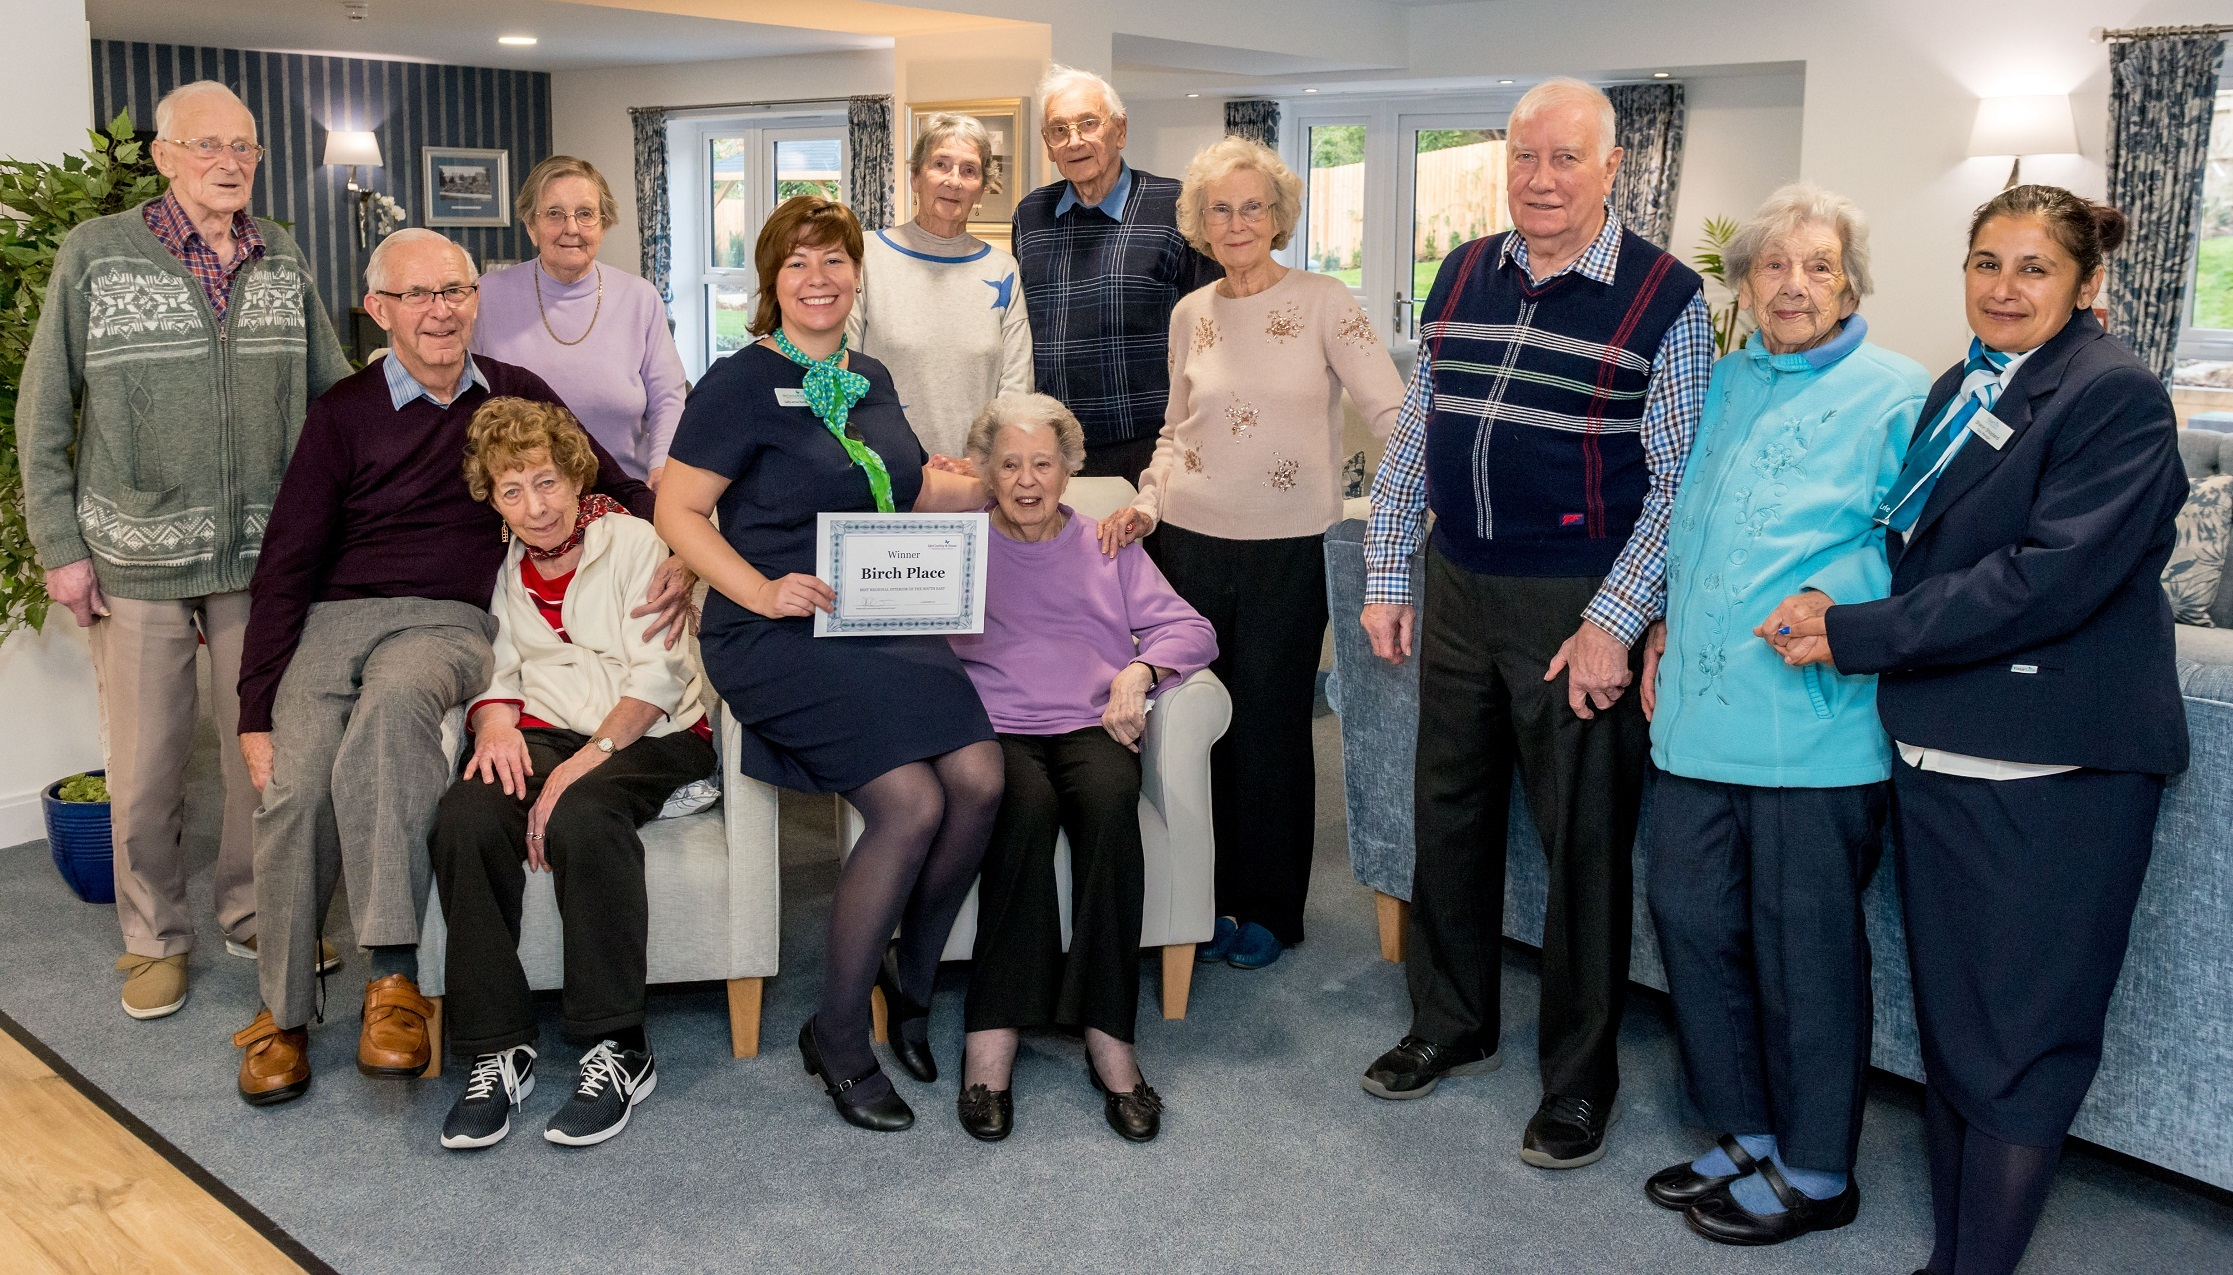 Residents from the Crowthorne Birch Place Retirement Living Plus development with the award